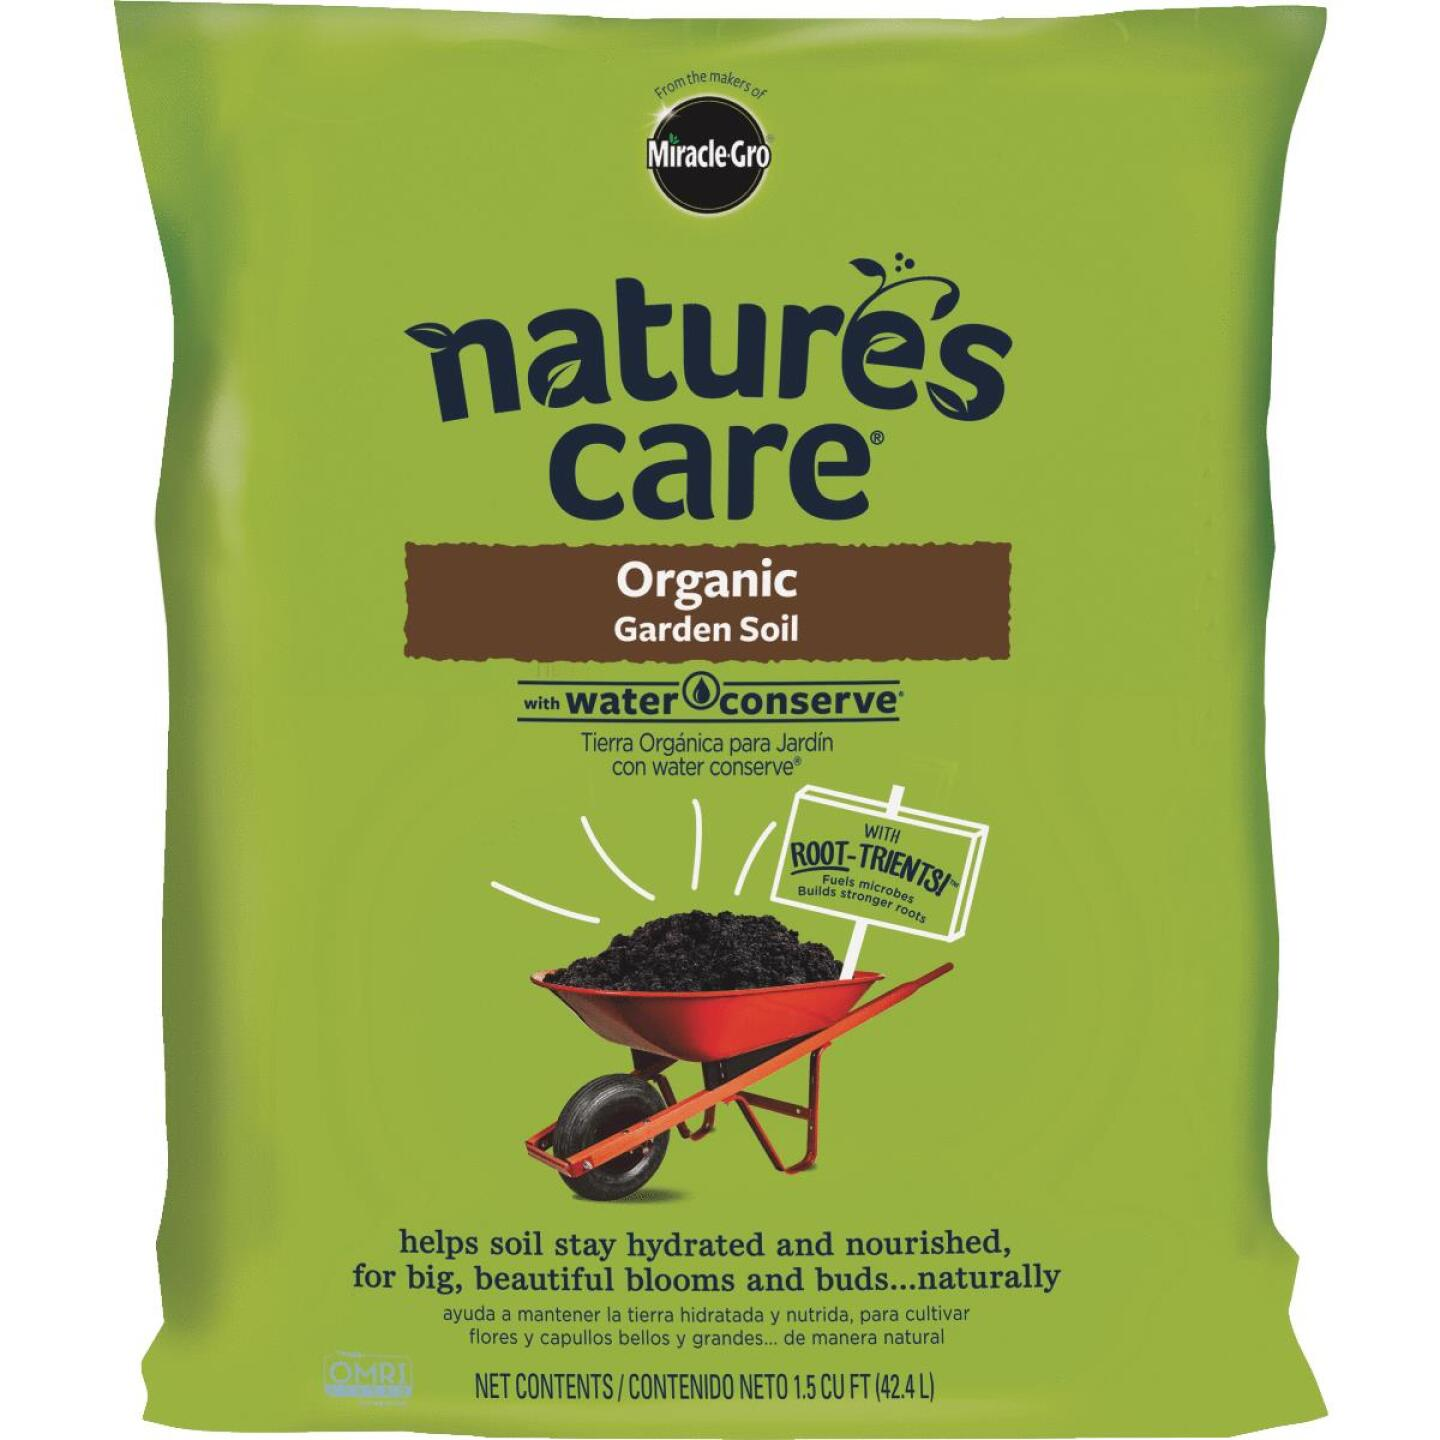 Miracle-Gro Nature's Care 1.5 Cu. Ft. 49 Lb. All Purpose Organic Garden Soil Image 1